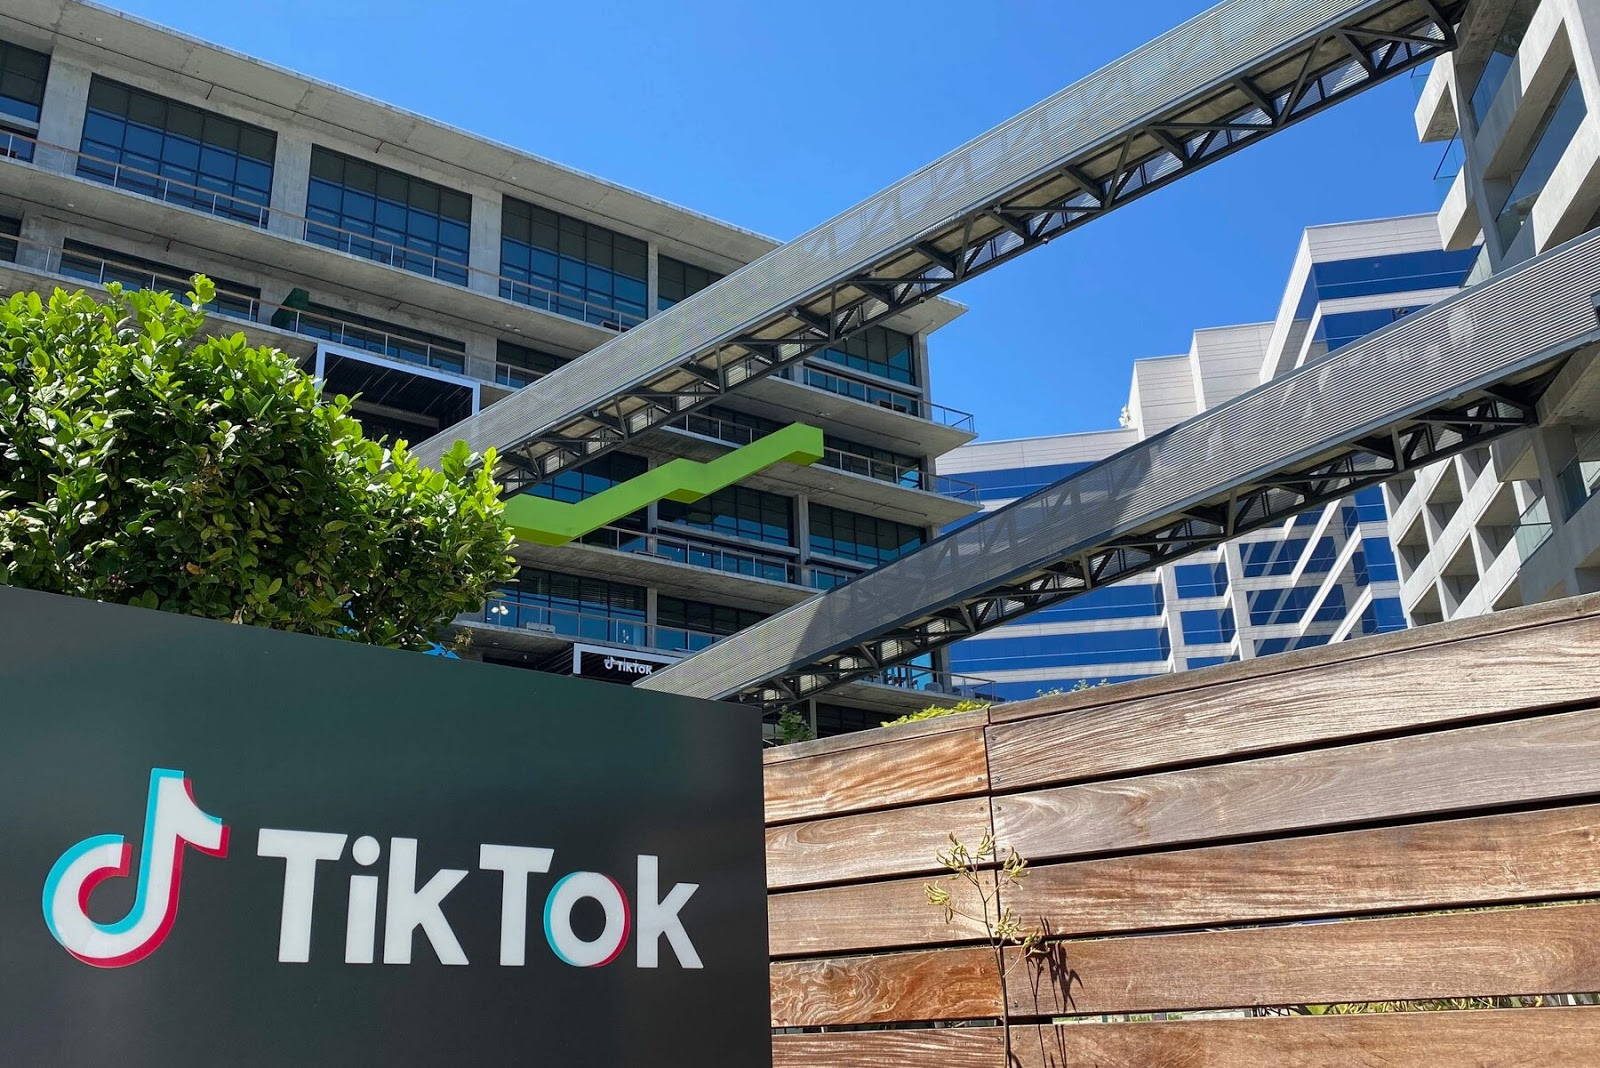 Oracle Said to Be Weighing Bid for TikTok's U.S